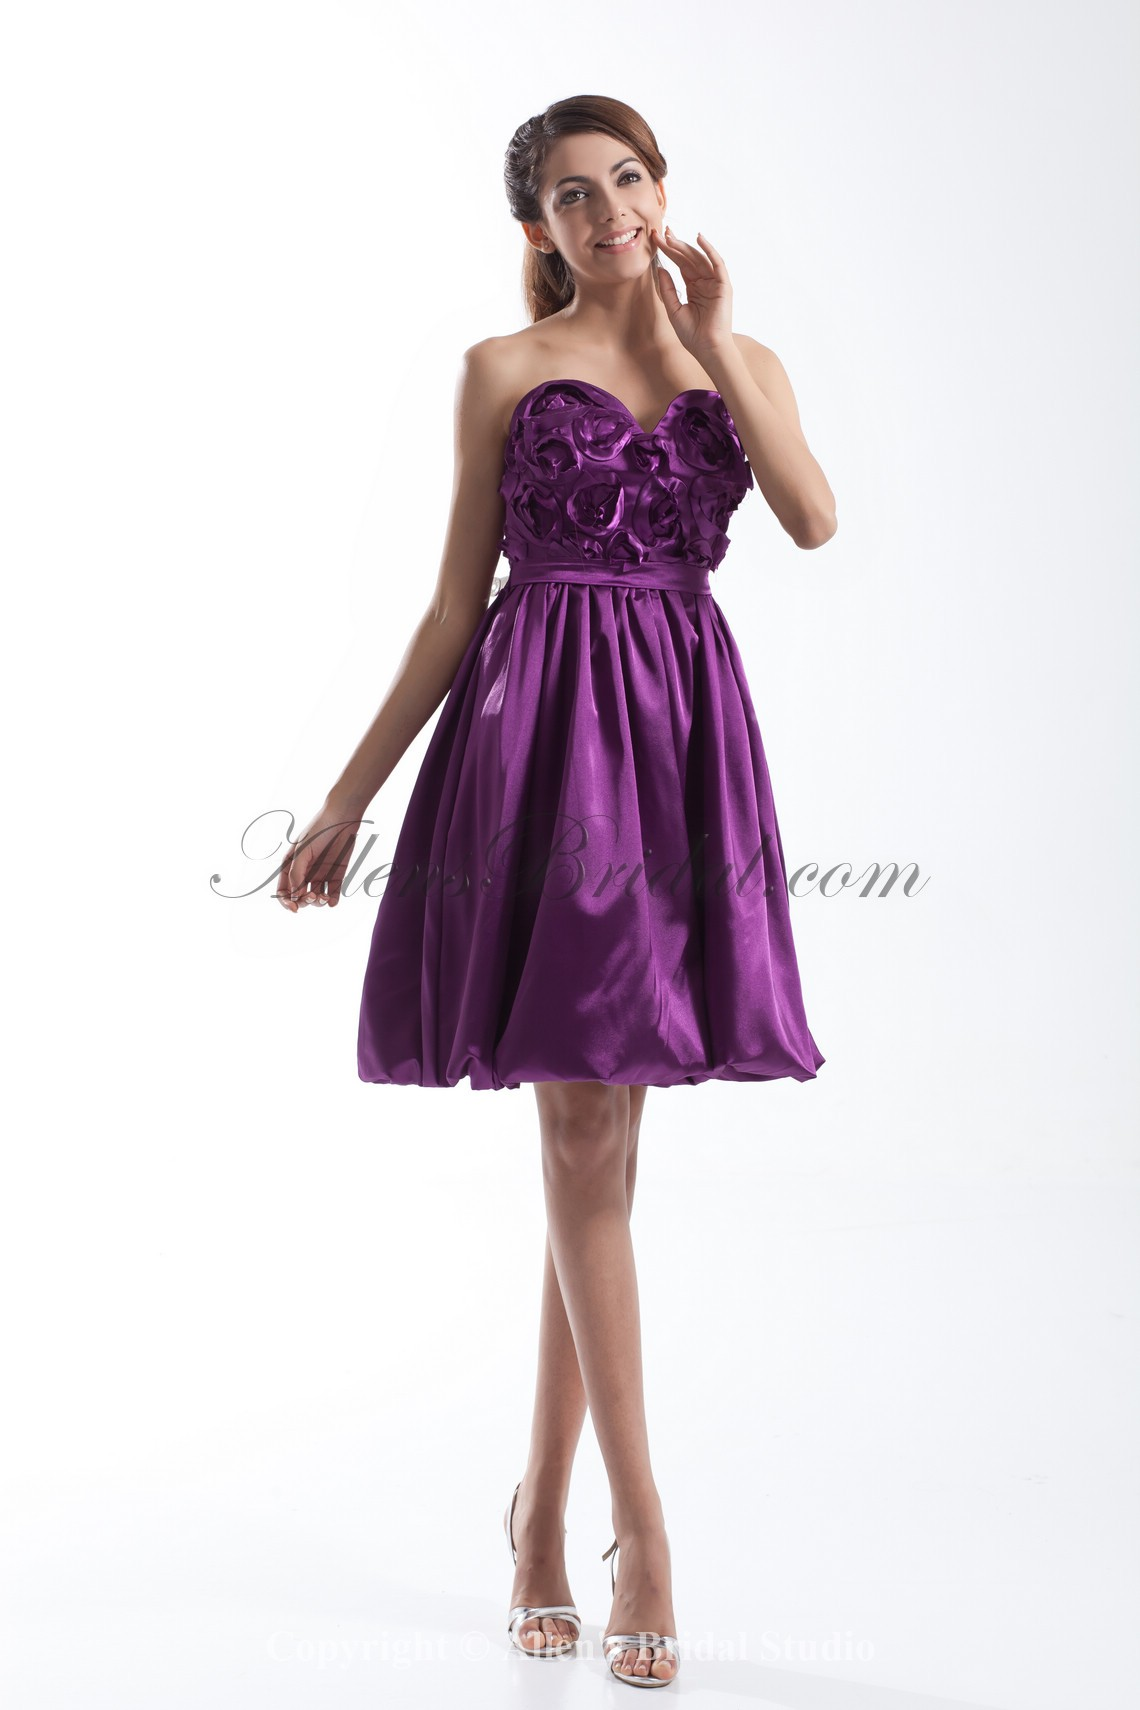 /633-5069/satin-sweetheart-knee-length-a-line-hand-made-flowers-cocktail-dress.jpg